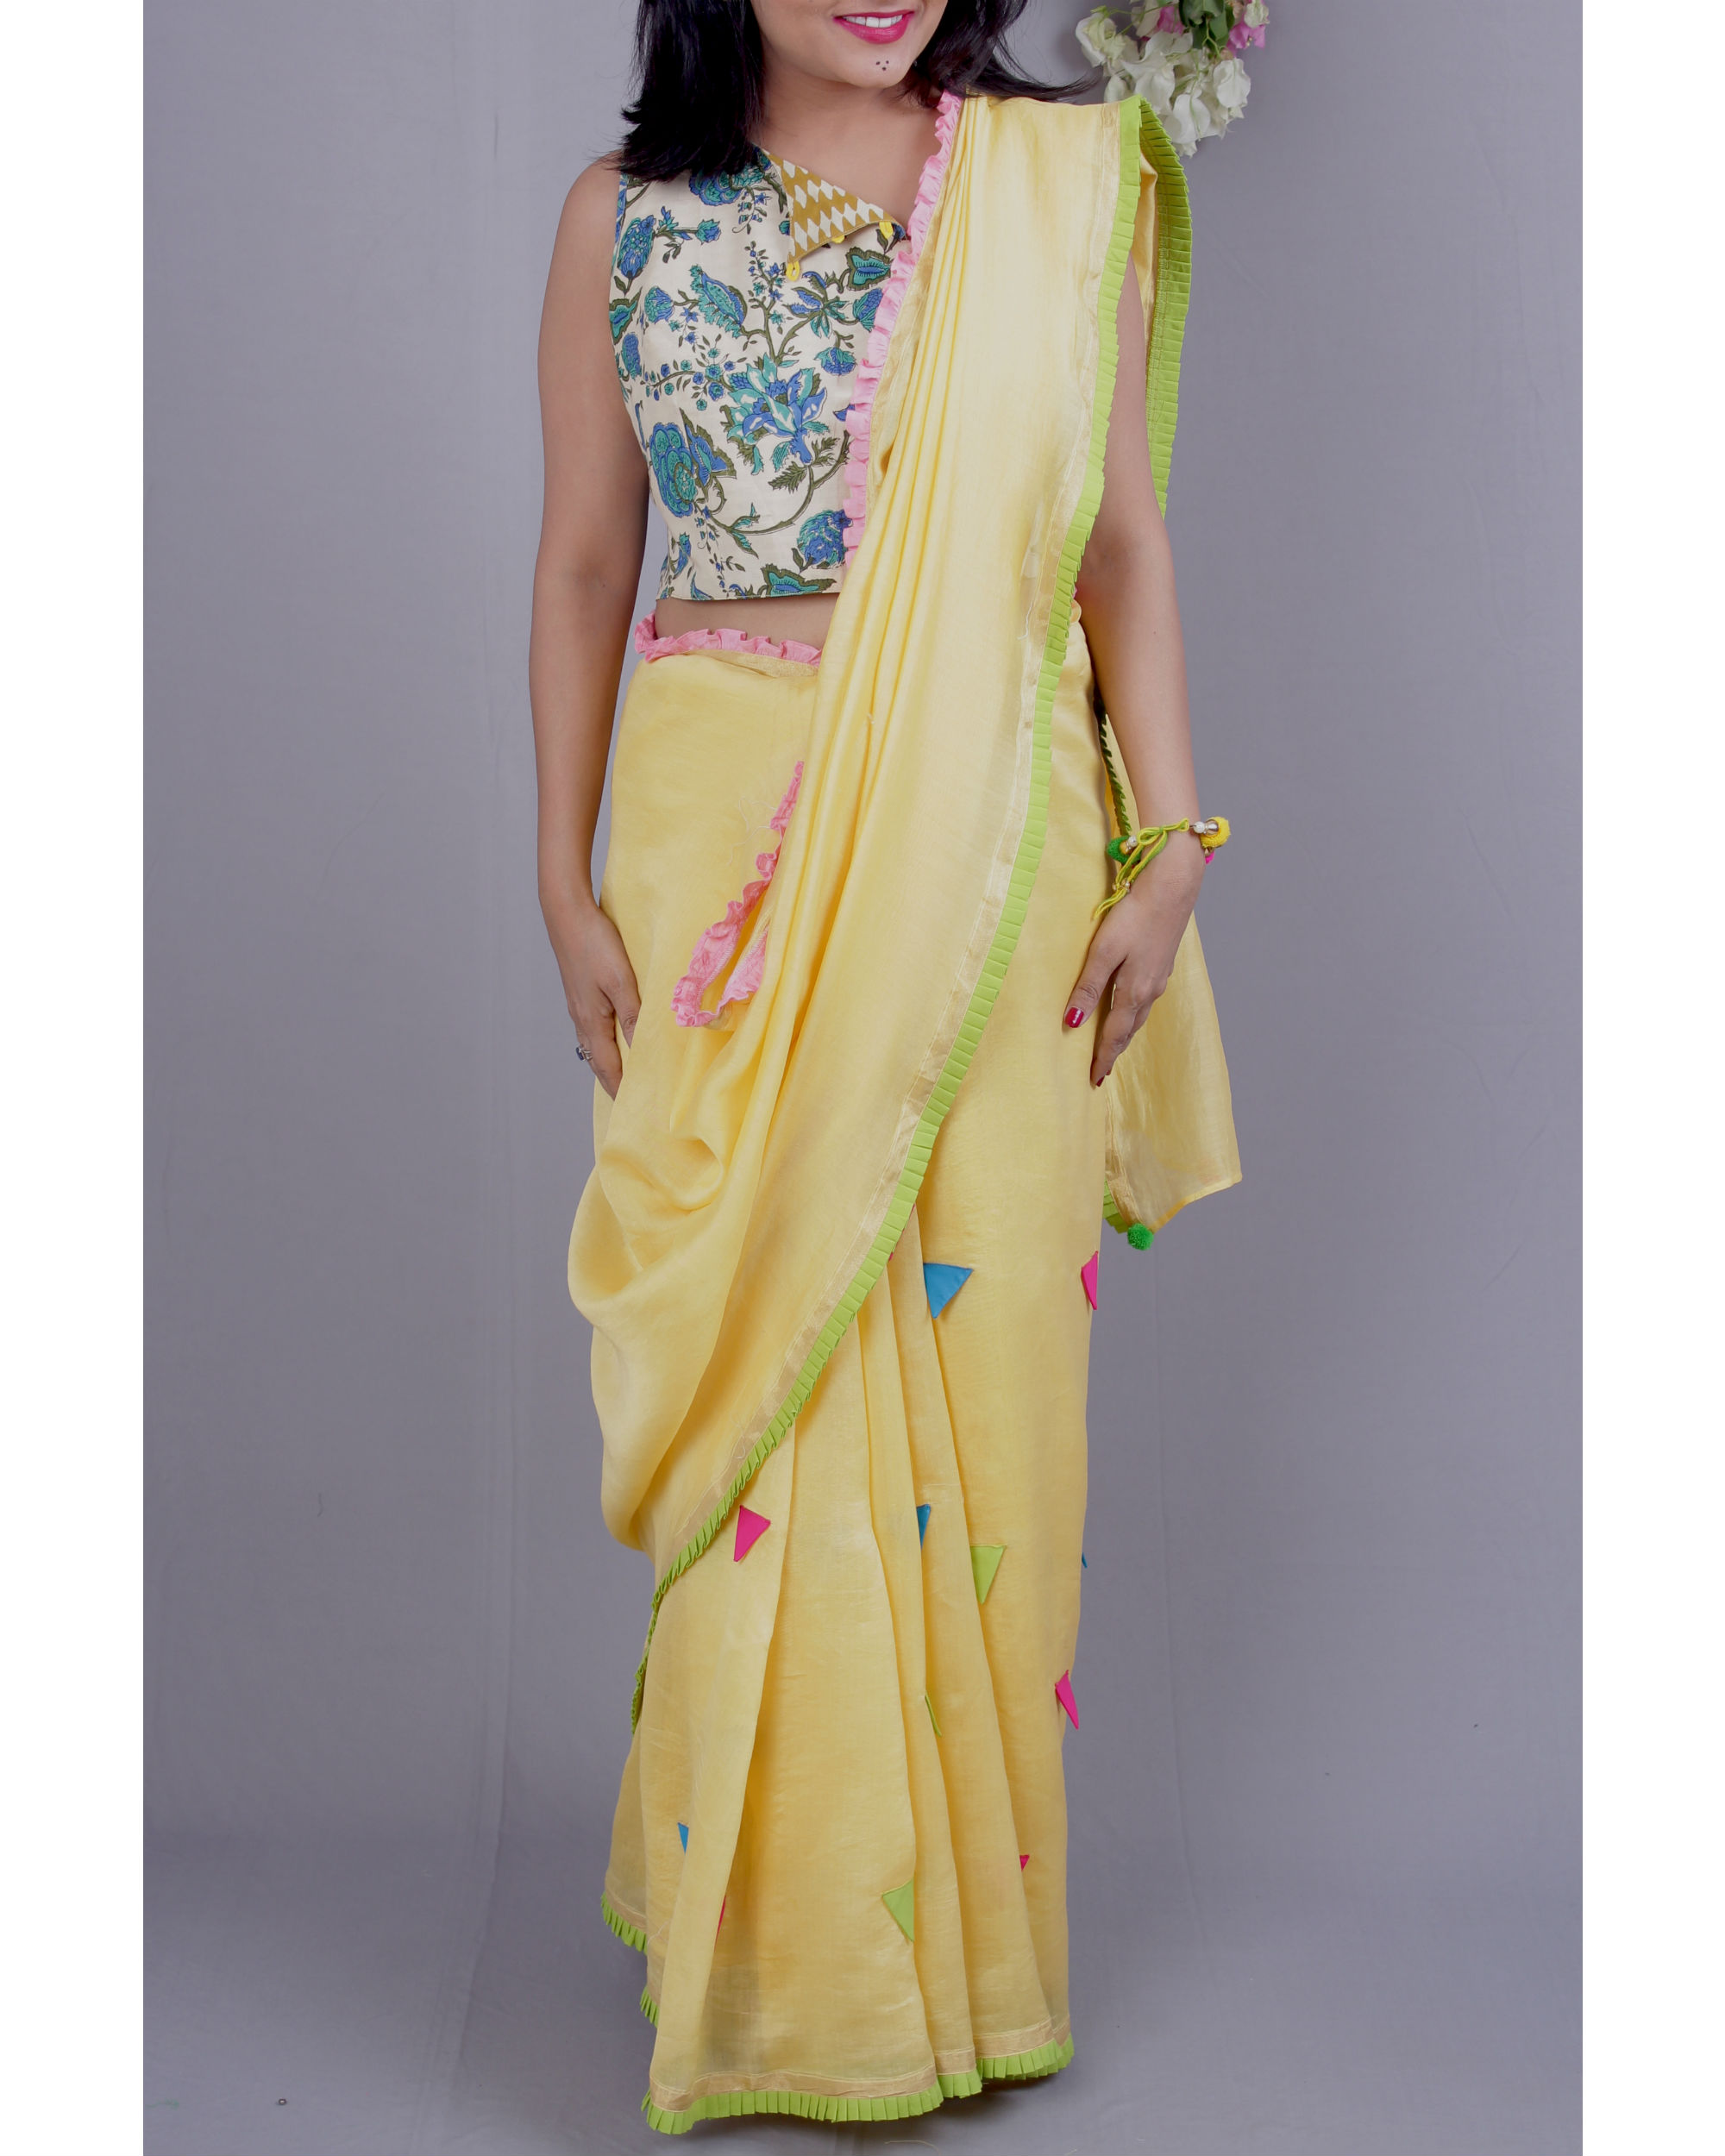 Chanderi sari with crop top